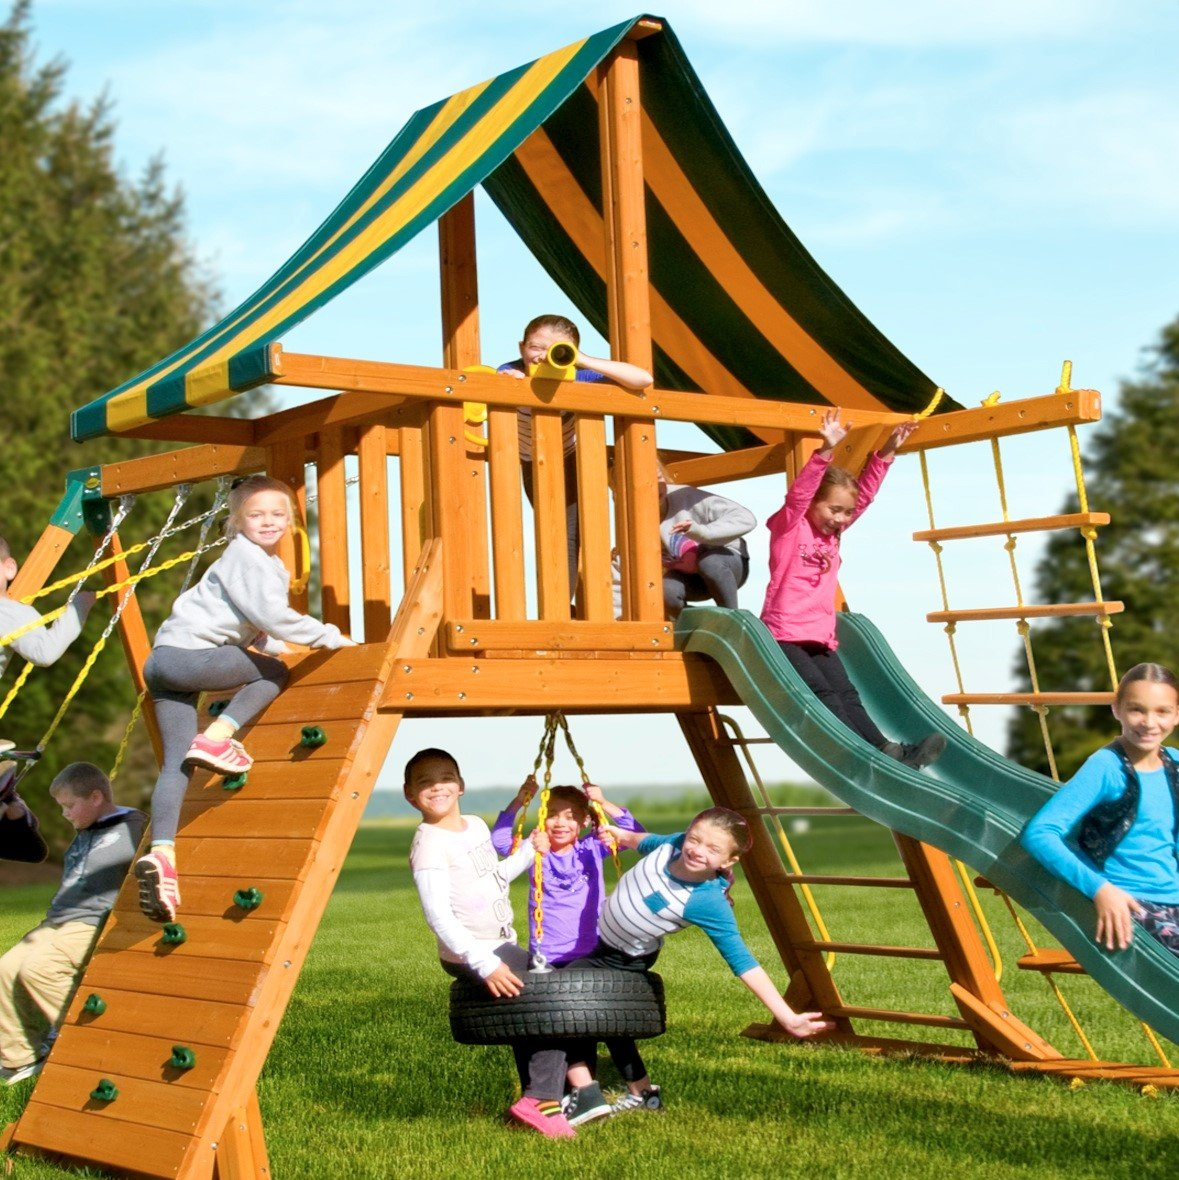 Eastern Jungle Gym Extra Large Plastic Toy Telescope Swing Set Accessory Green for Outdoor Wooden Swing Set by Eastern Jungle Gym (Image #5)